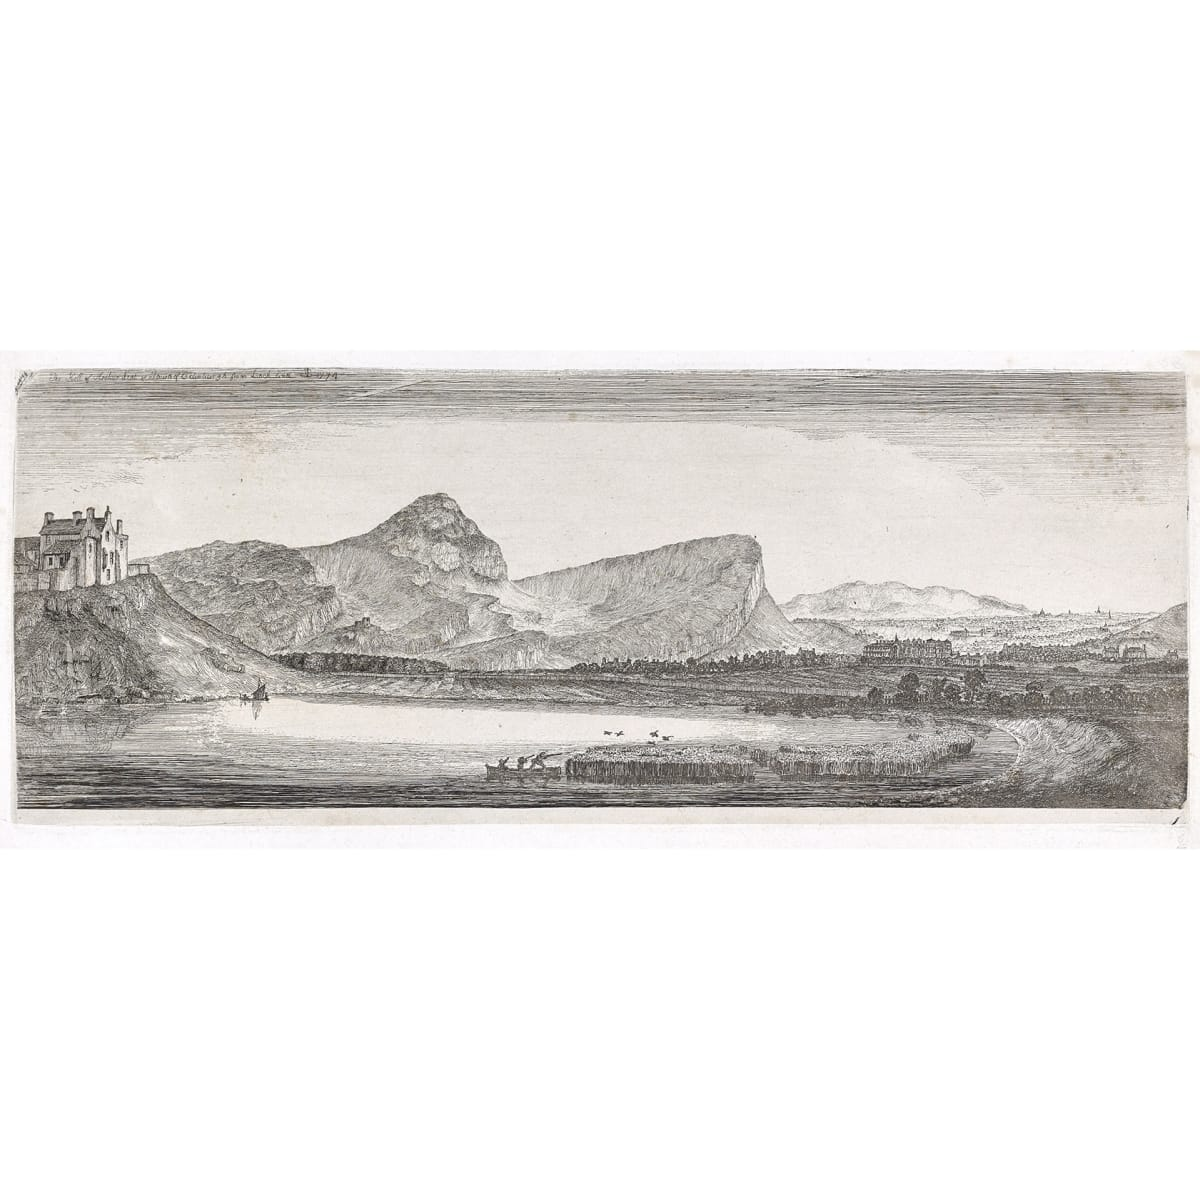 John Clerk of Eldin Arthur's Seat from Lochend, 1774 titled, initialled JC and dated 1774 in plate etching 5 3/4 x 15 1/4 inches only state